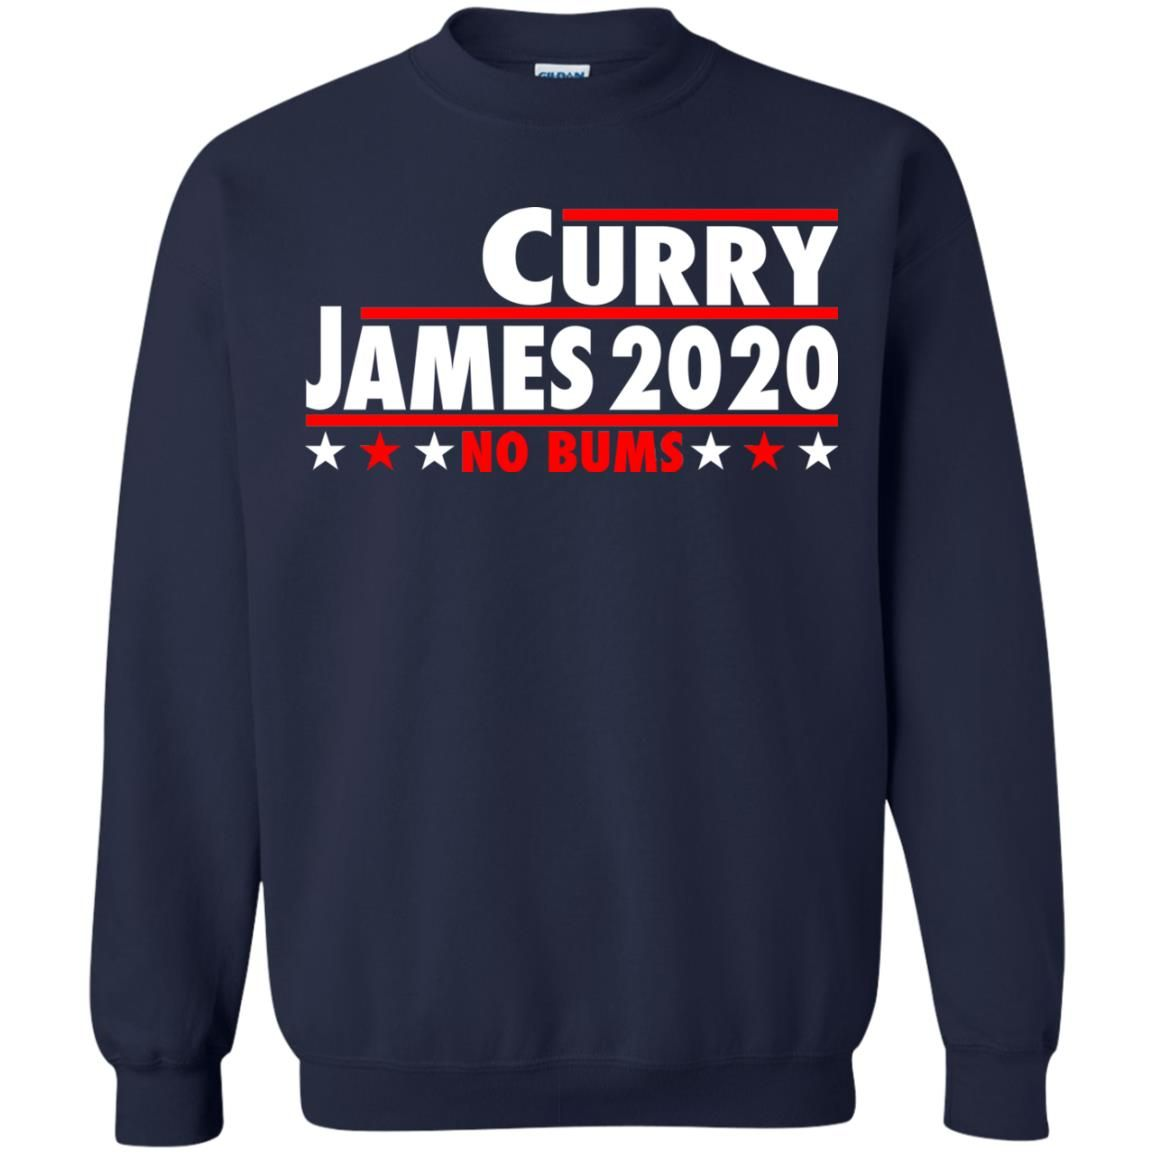 image 2029 - Curry Jame 2020 for President shirt